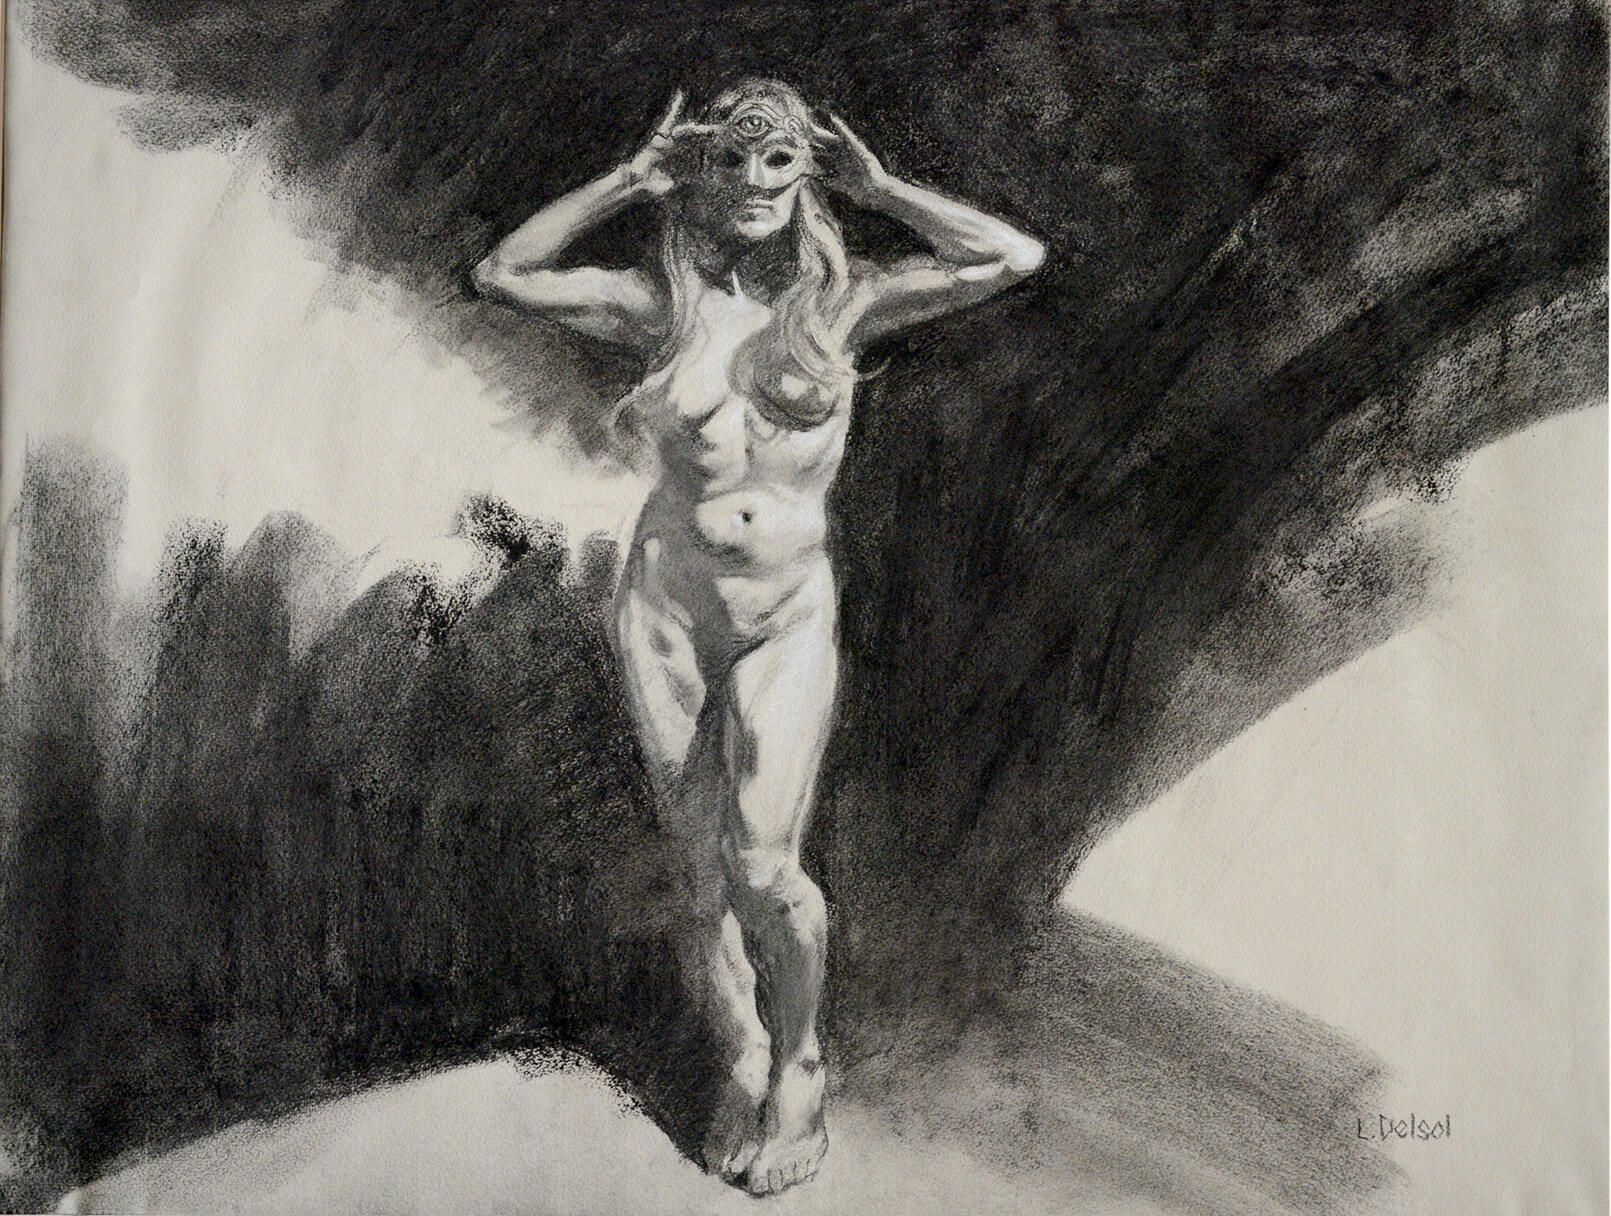 Realistic full figure charcoal drawing of a woman wearing only a masquerade mask.